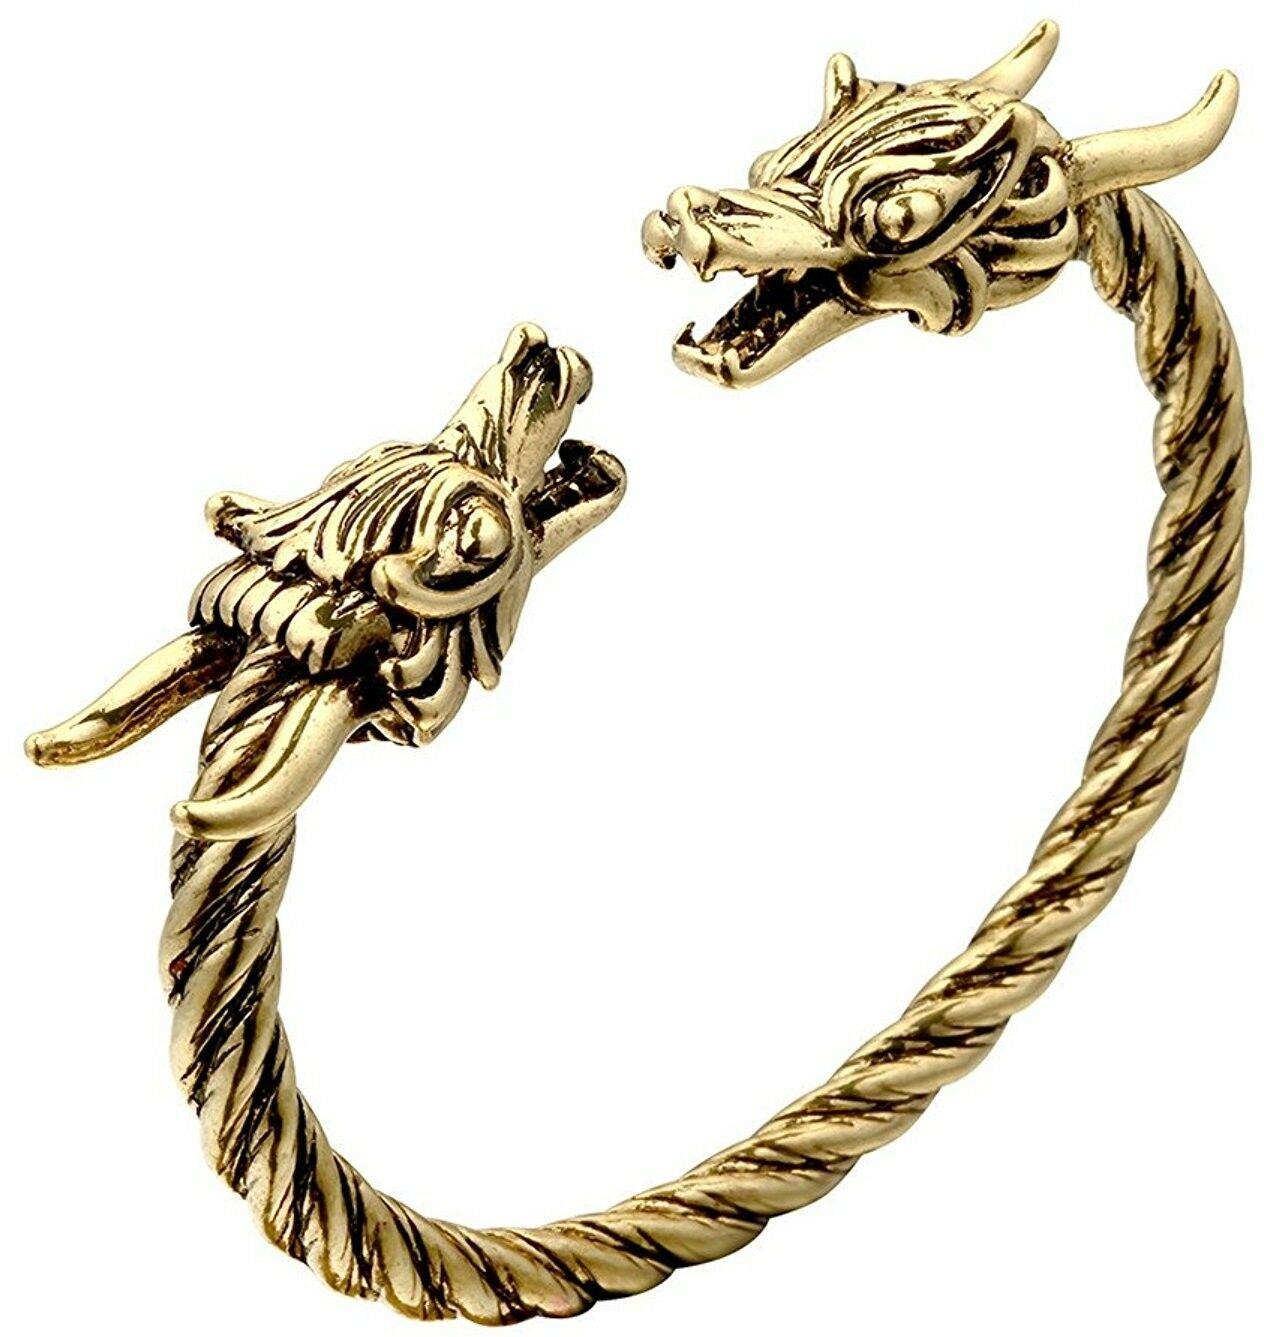 Unisex 18K gold Plated Double Dragon Head Cuff Open Adjustable Spiral